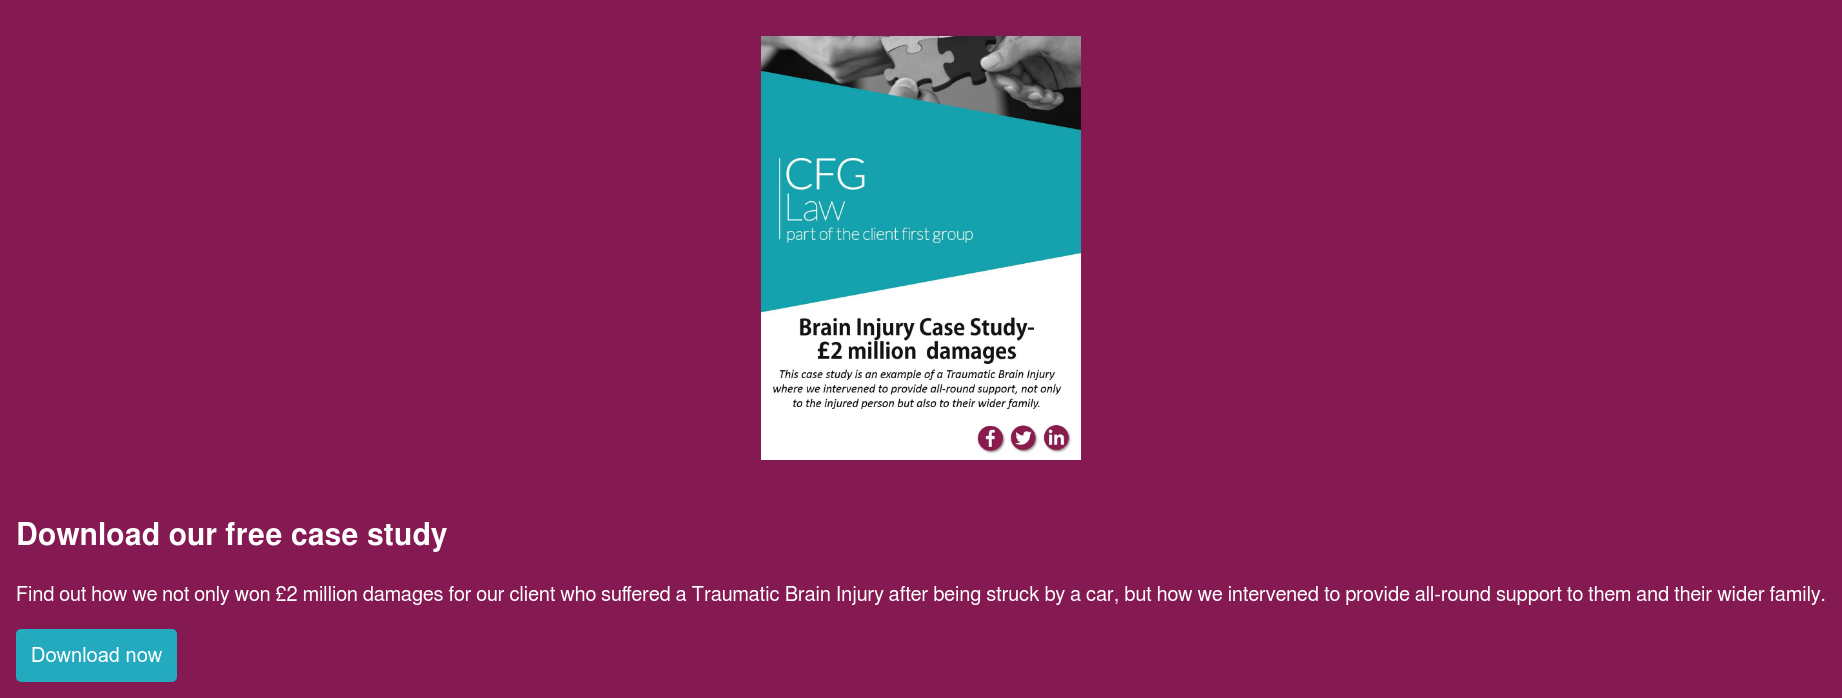 Download our free case study  Find out how we not only won £2 million damages for our client who suffered a  Traumatic Brain Injury after being struck by a car, but how we intervened to  provide all-round support to them and their wider family. Download now